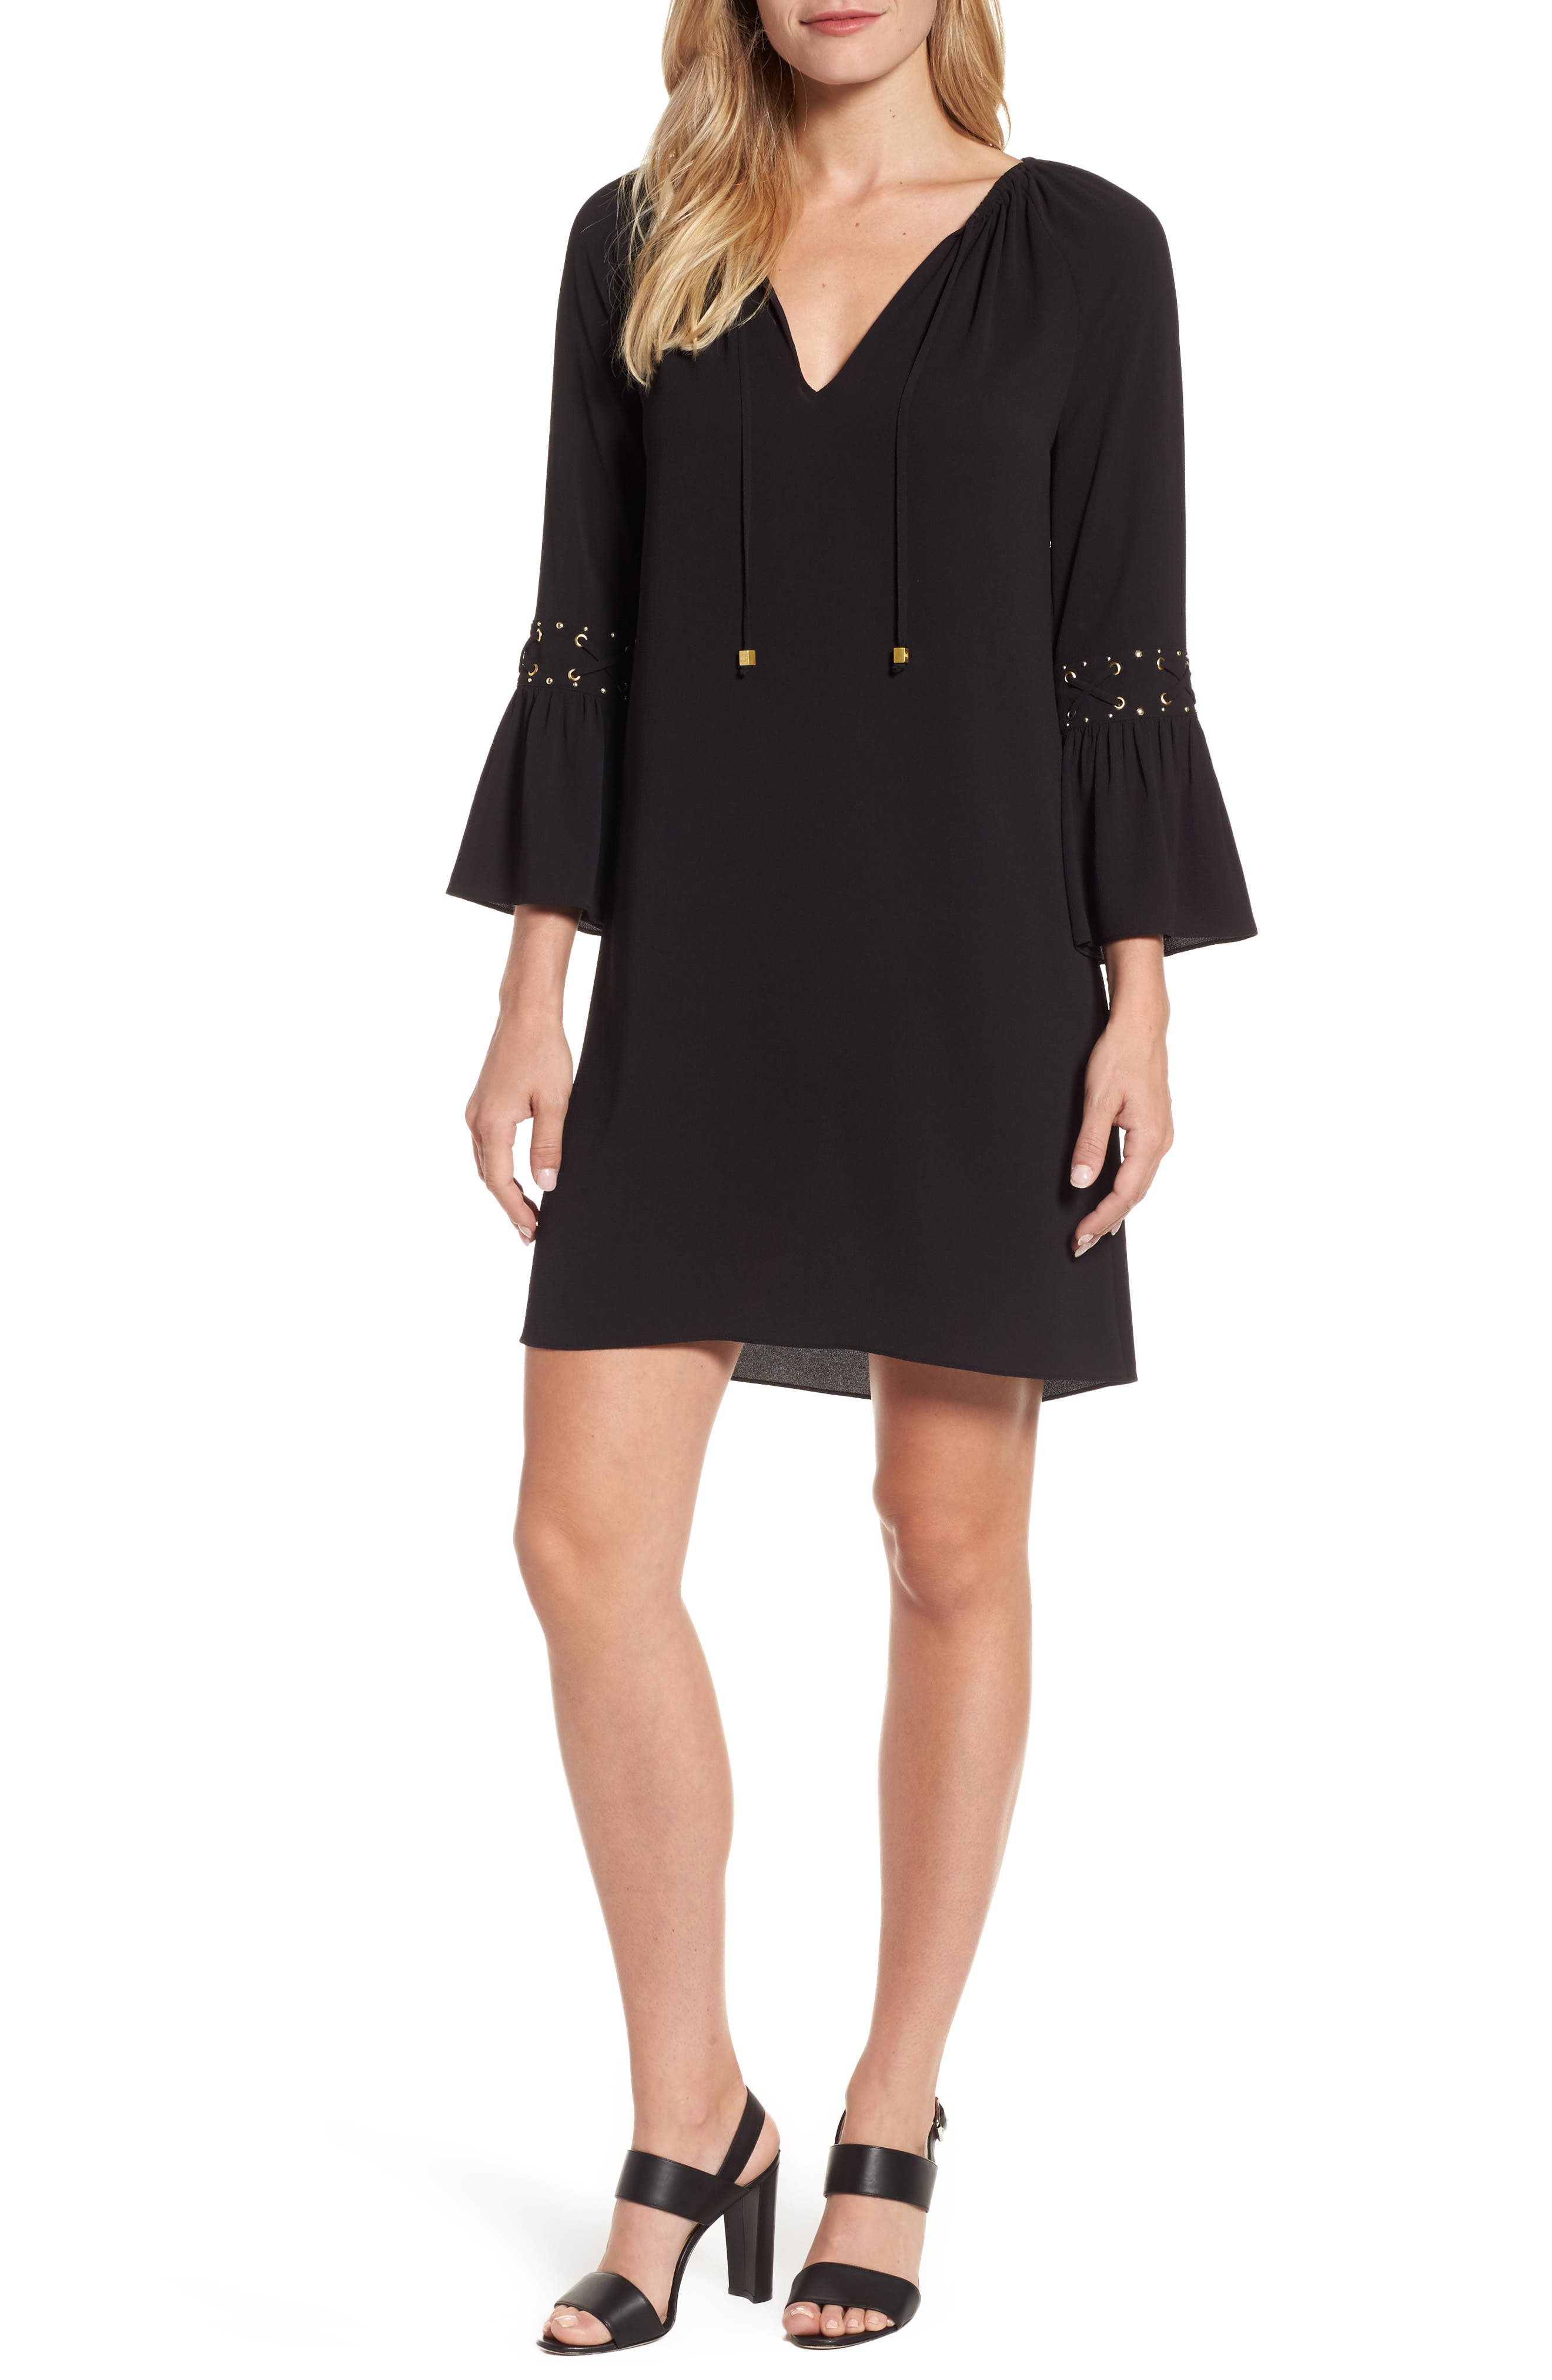 MICHAEL Michael Kors Lace-Up Sleeve Dress